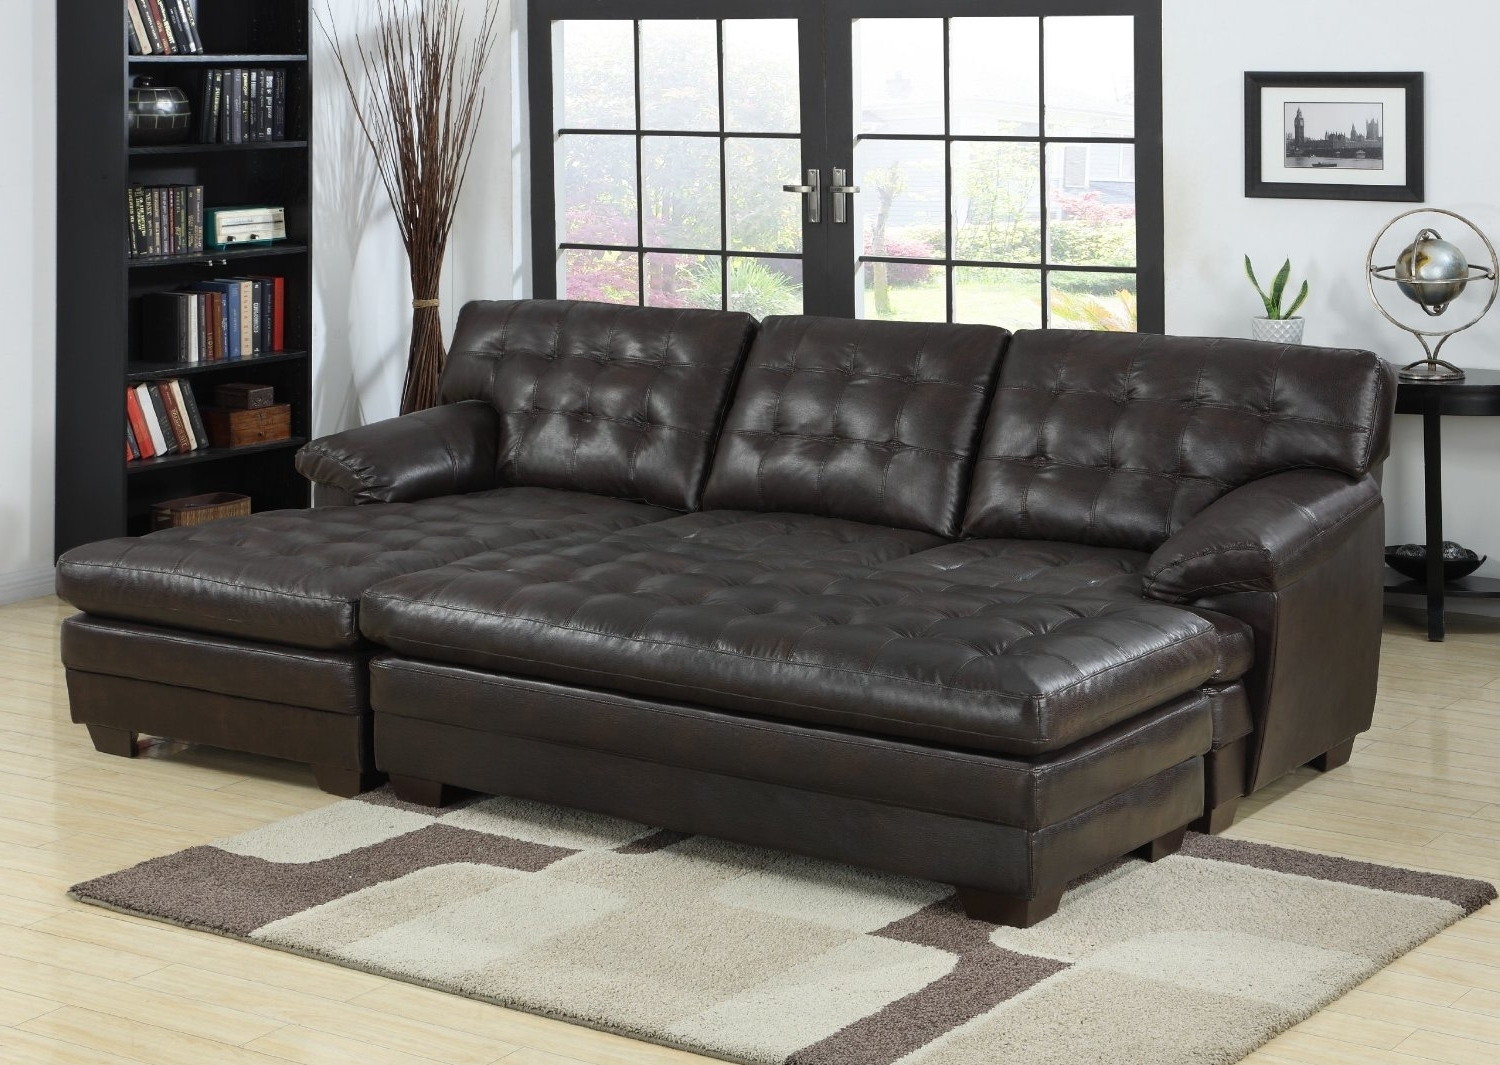 Luxury Double Chaise Lounge Sofa 92 About Remodel Sofas And For Well Liked Two Person Chaise Lounges (View 5 of 15)